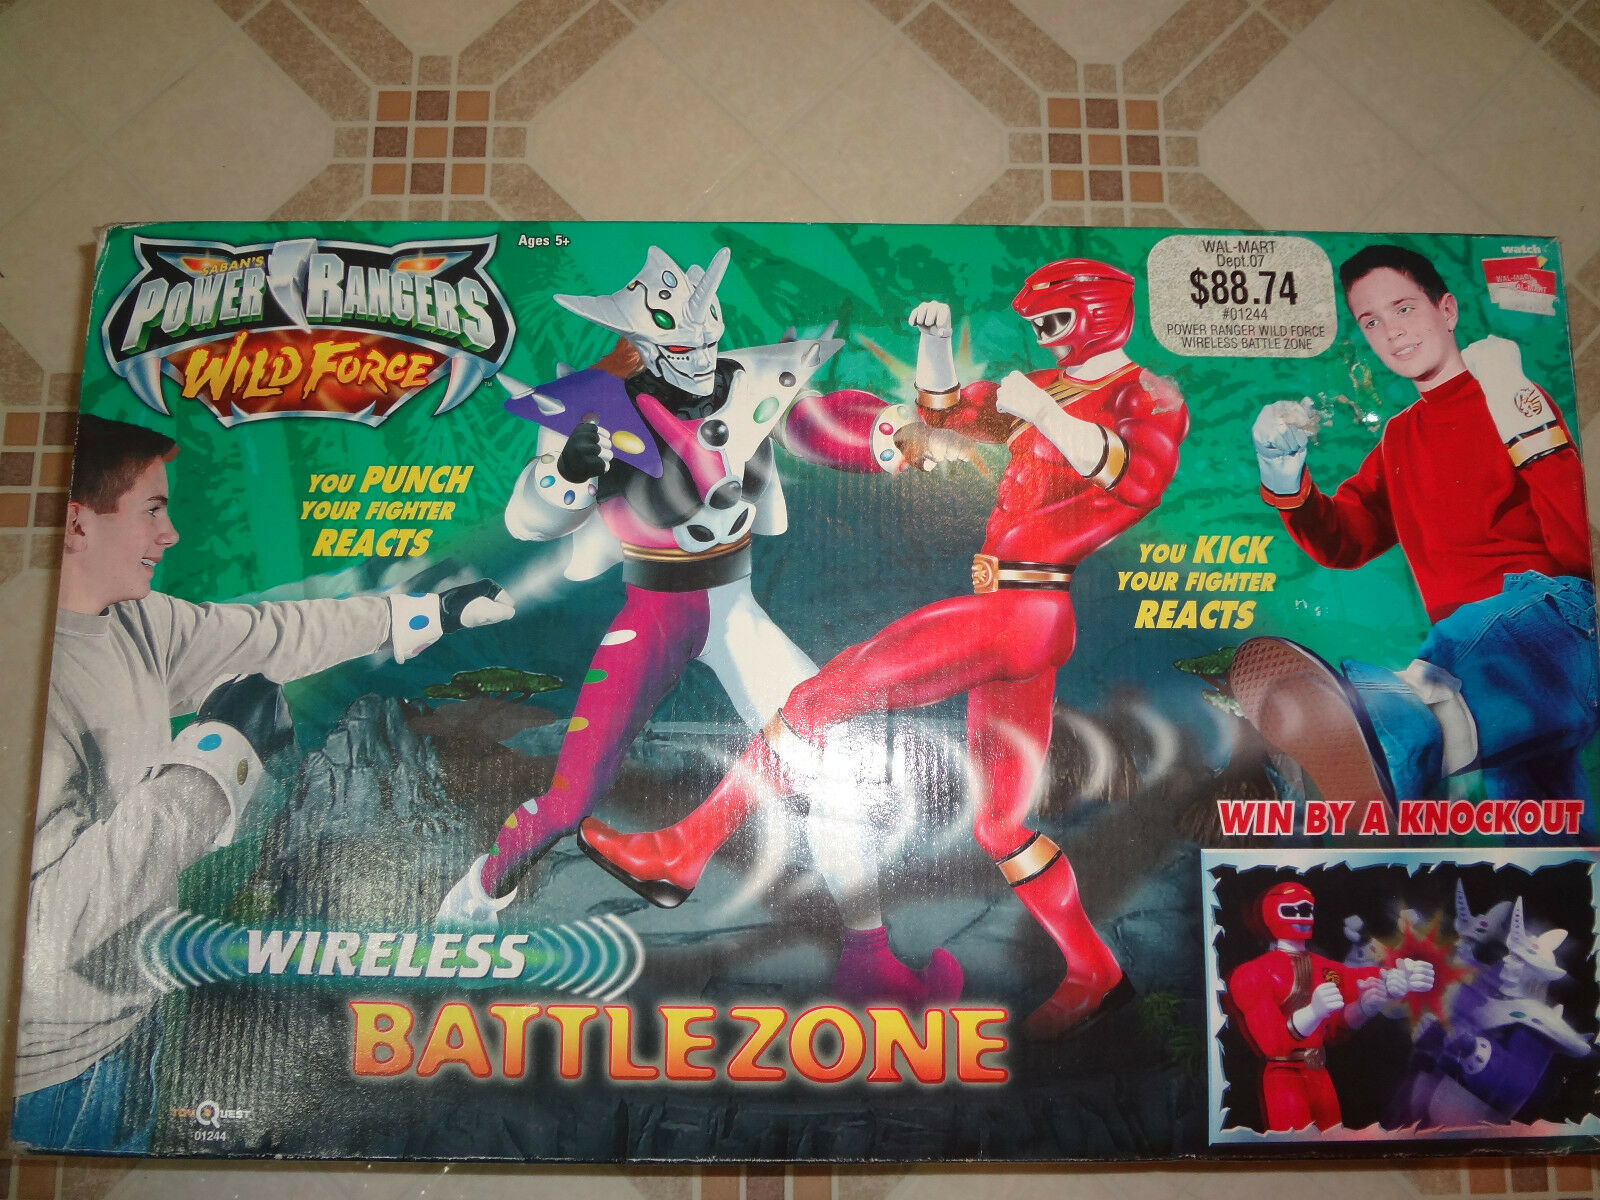 Power rangers wilde kraft wireless battlezone 5 + neue